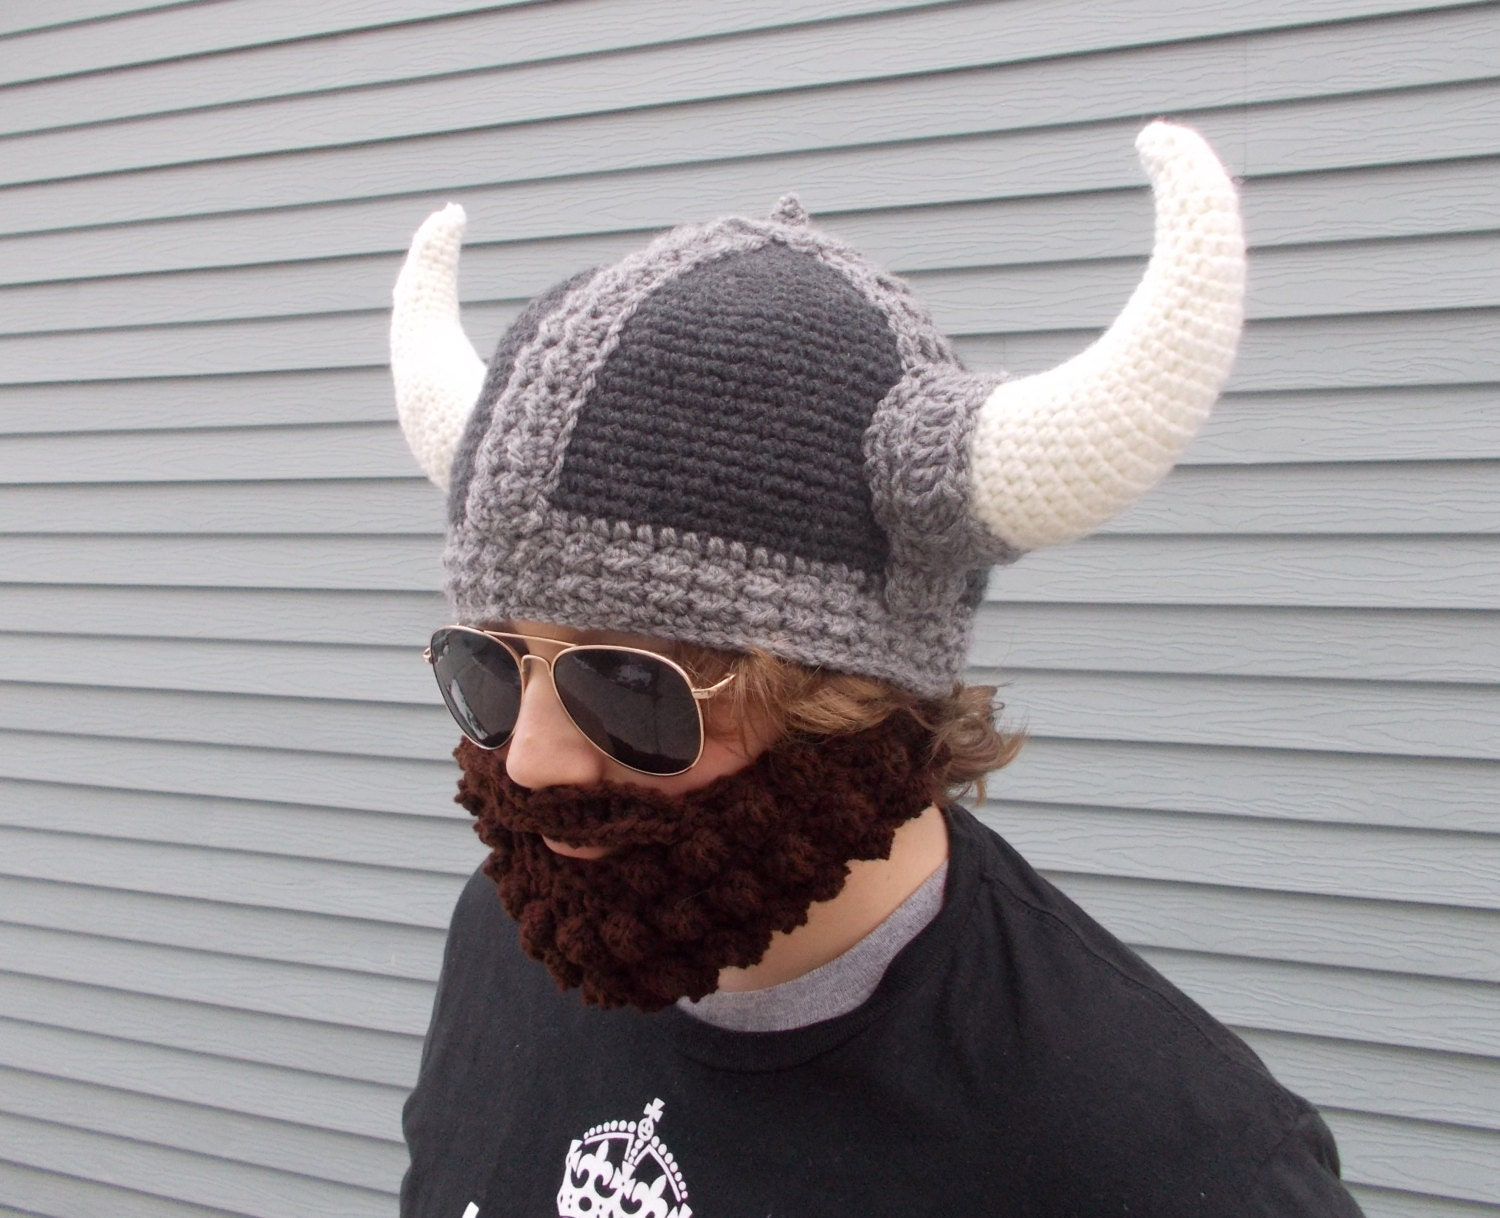 Crochet Viking Hat With Beard : Crochet Mens Viking Hat & Removable Beard in by ForestUrchin